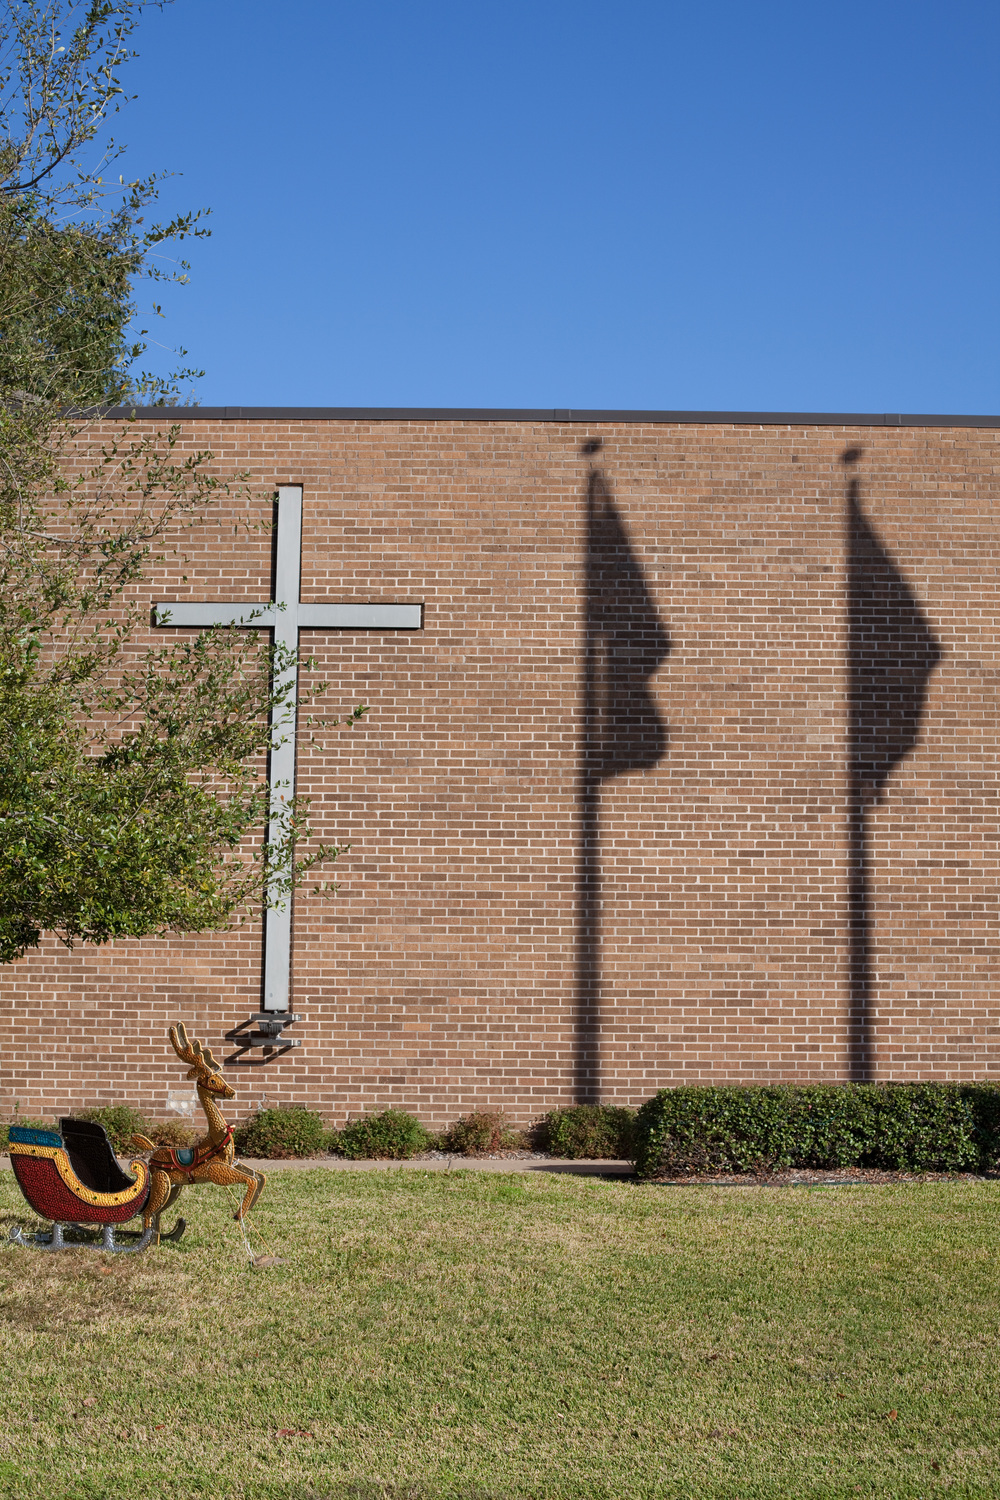 Salvation Army, Houston, Texas